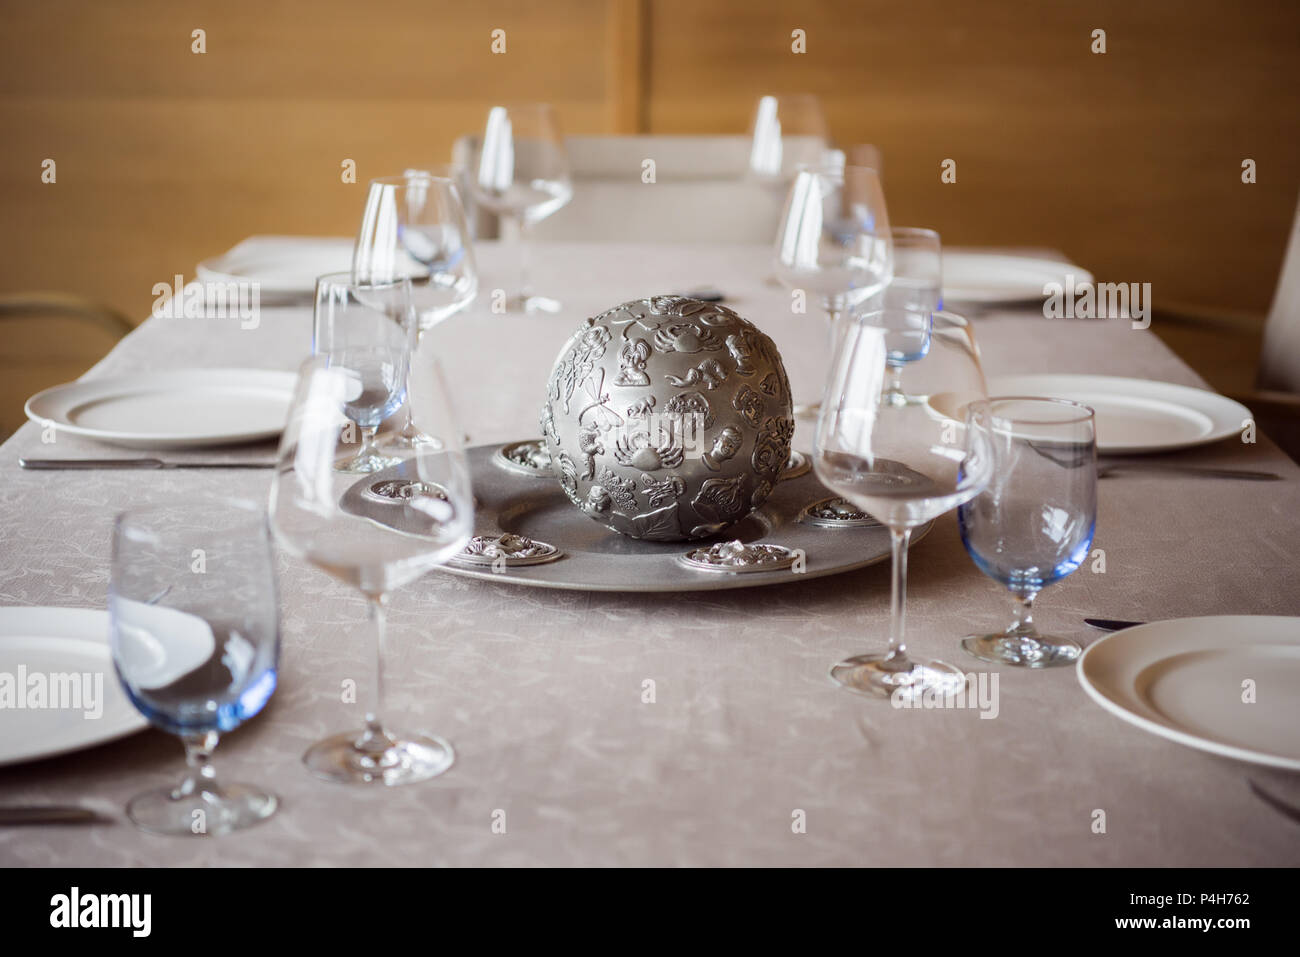 close up view of arrangement of cutlery, decorations and empty wineglasses on table in restaurant Stock Photo